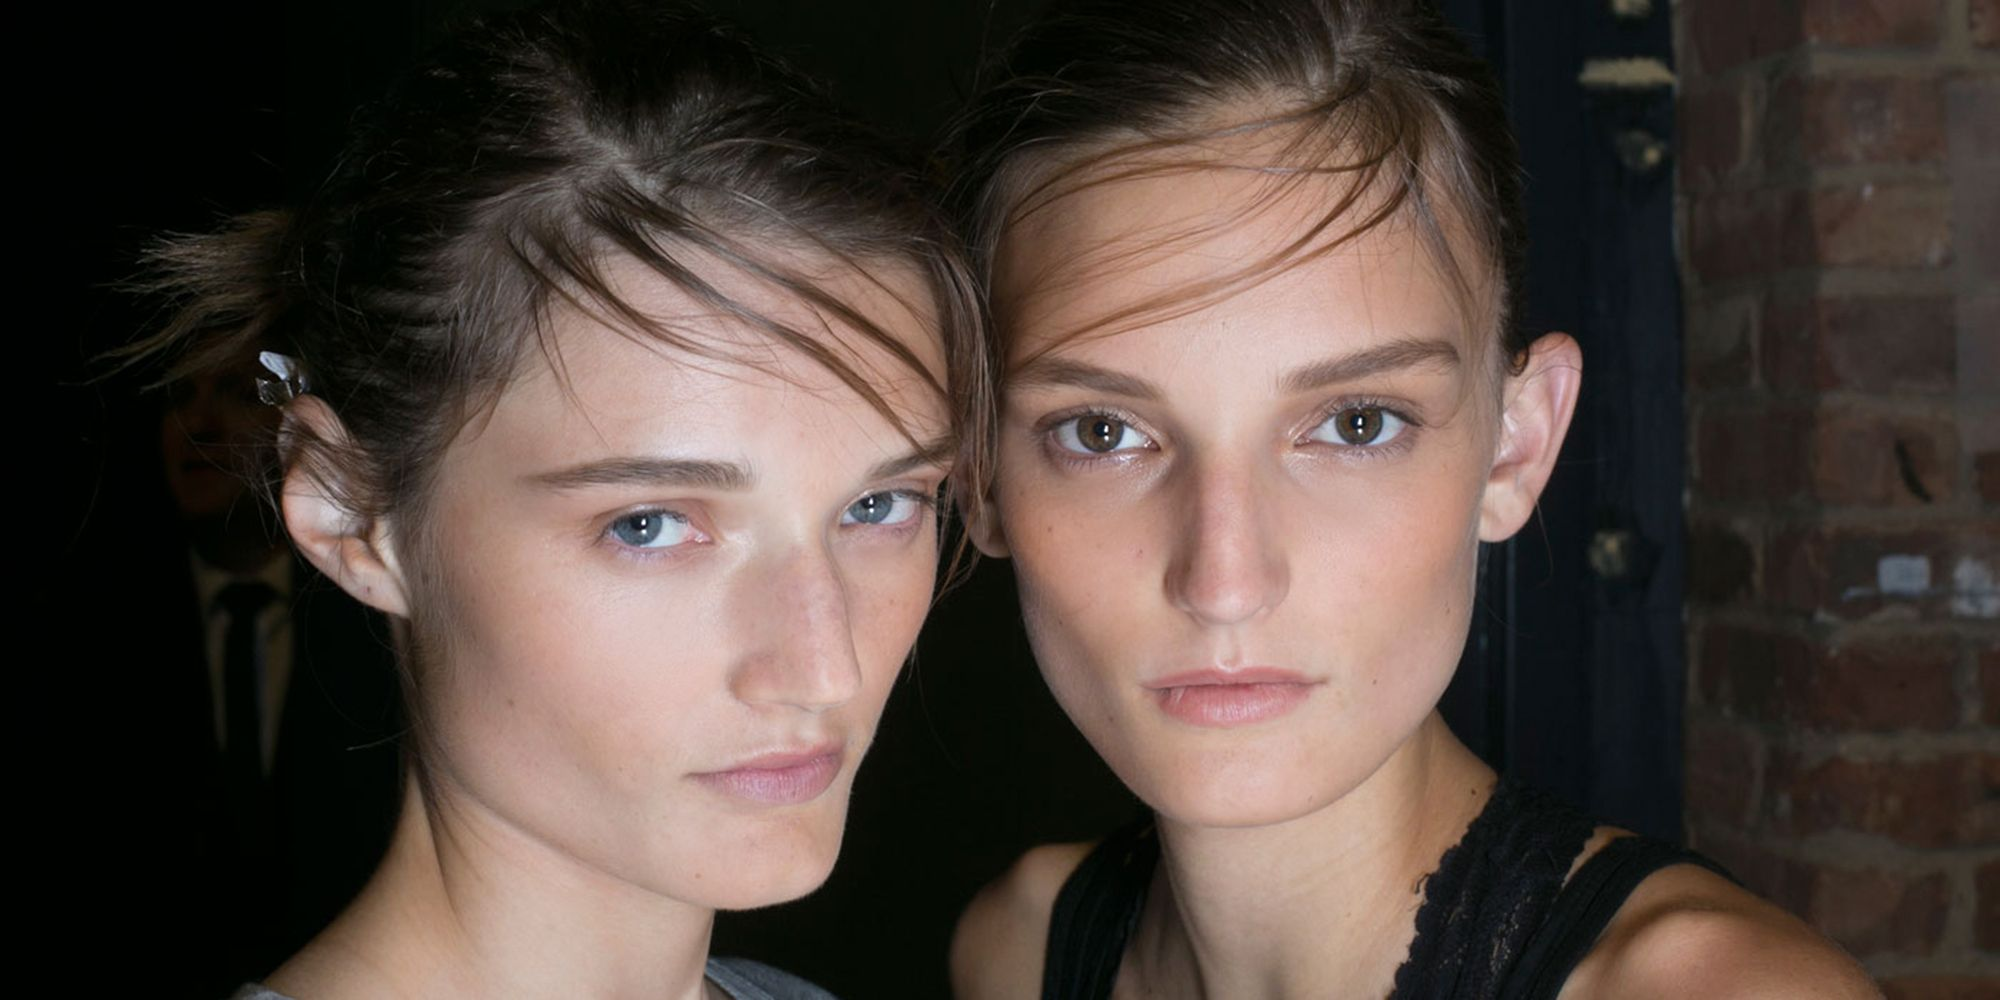 How To Look Good Without Mascara Makeup Artist Tips For No Mascara